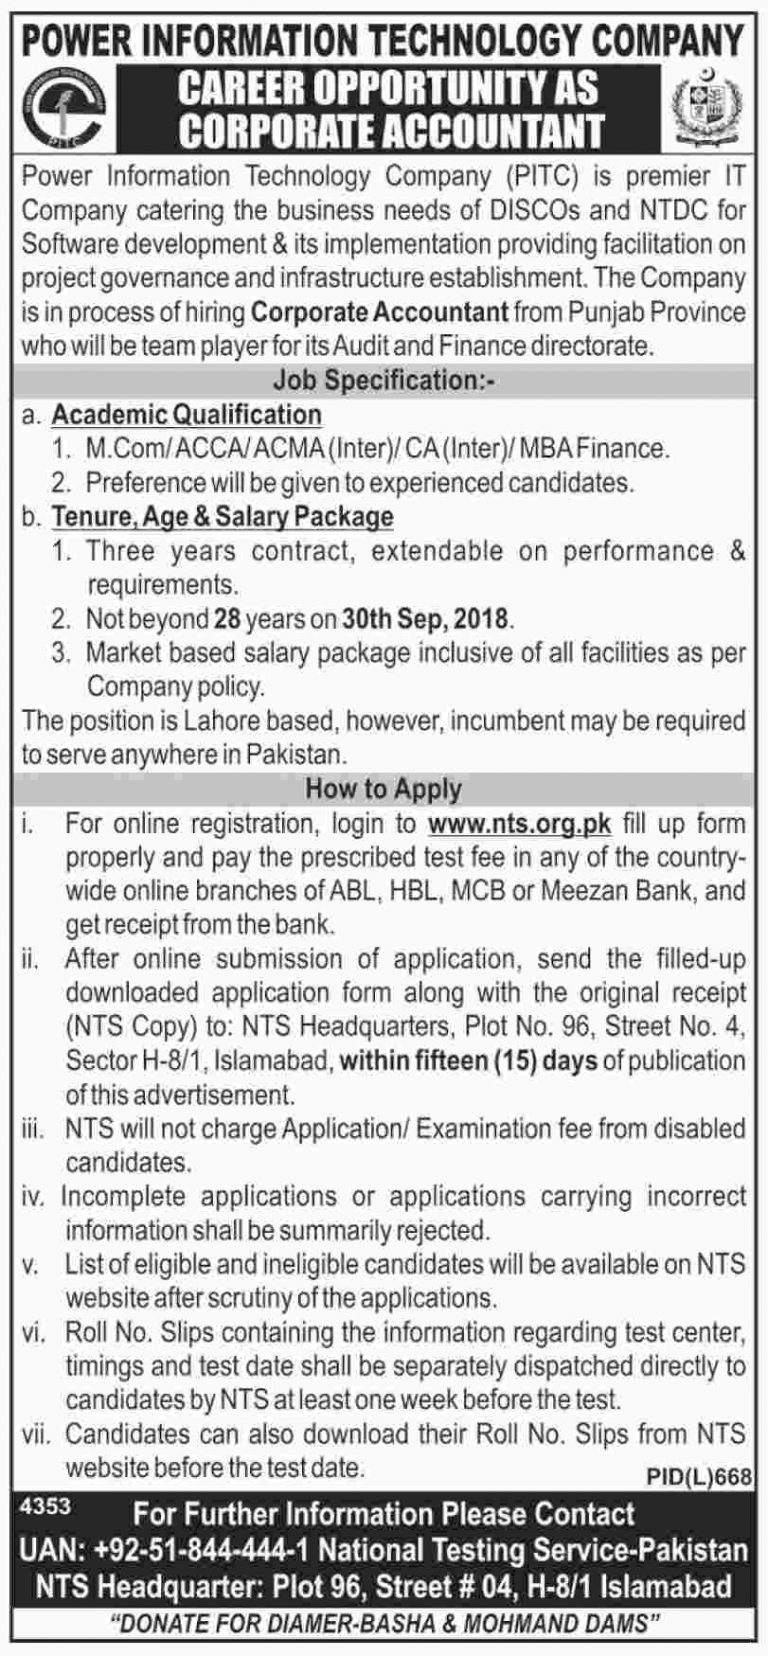 PITC Jobs 2018 Power Information Technology Company For Corporate Accountants